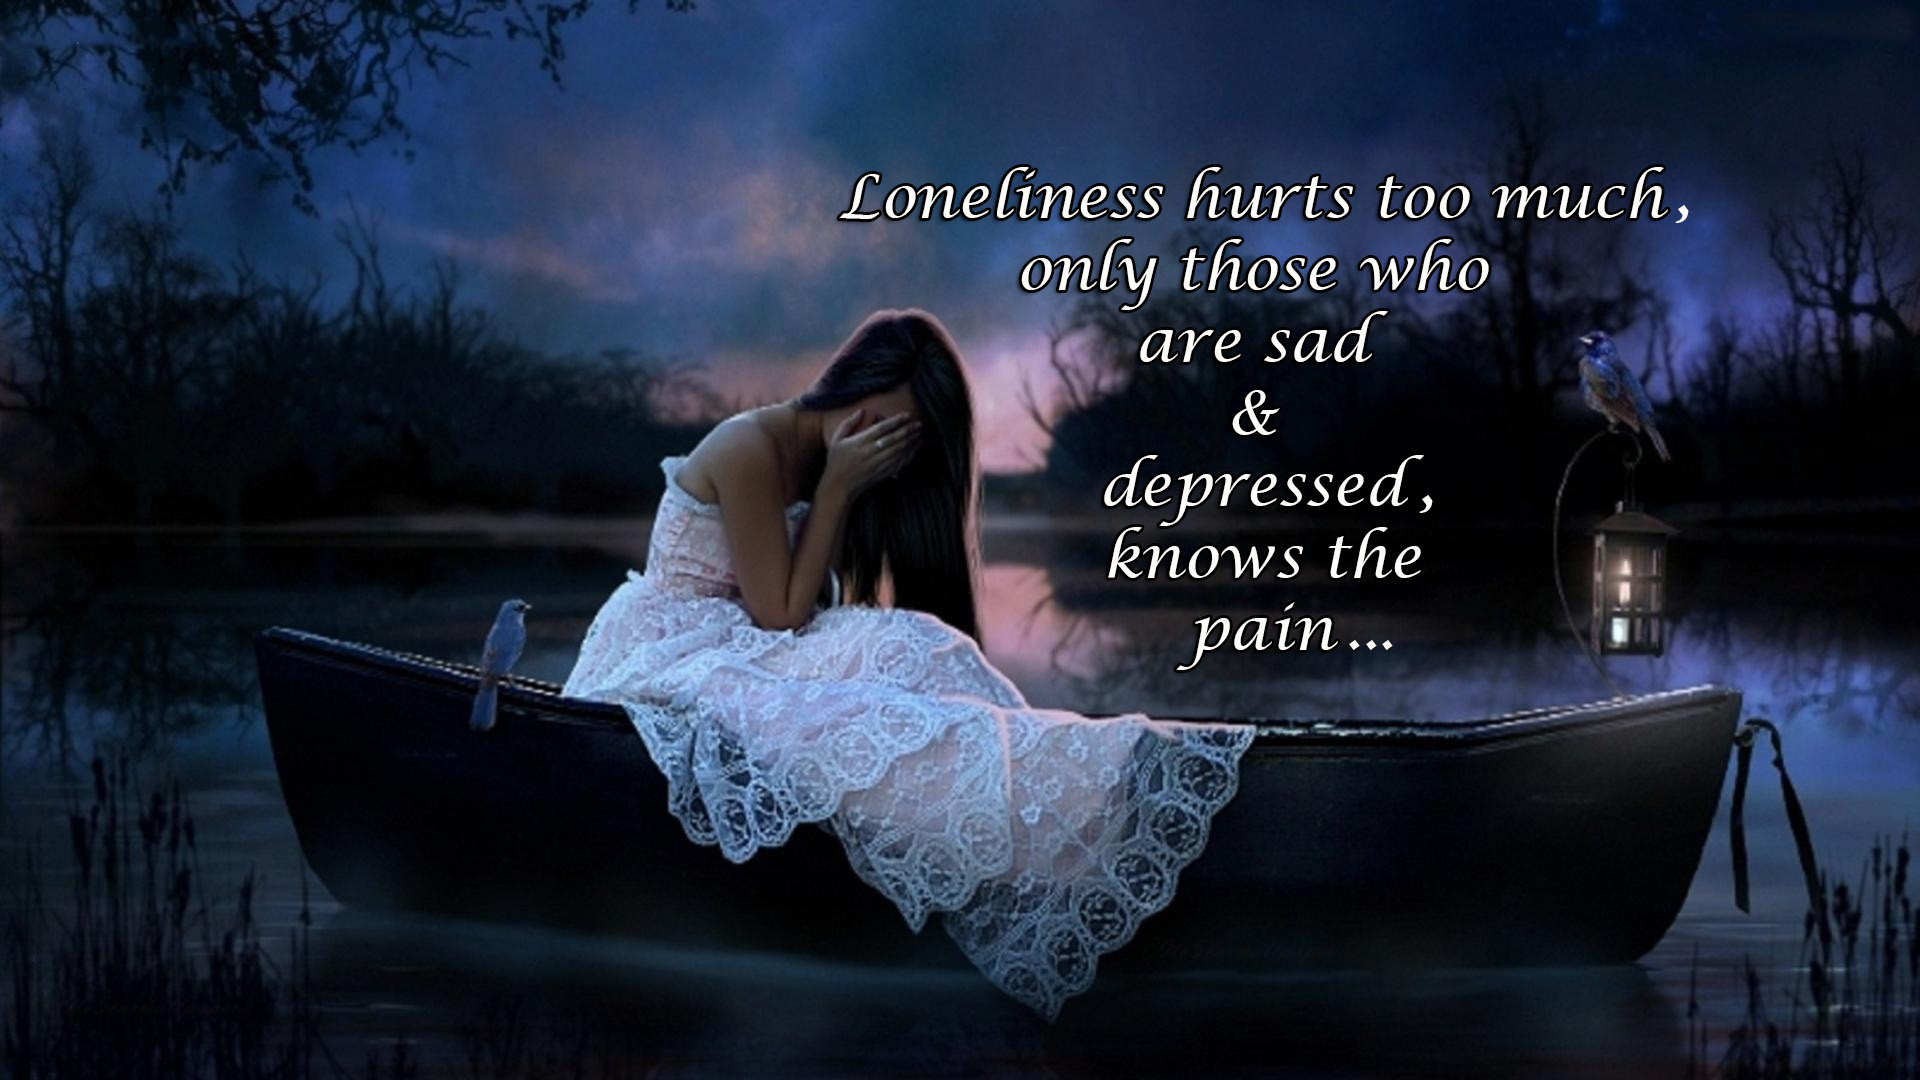 Loneliness Prevails Sadness Quotes Images Amp Hd Wallpapers